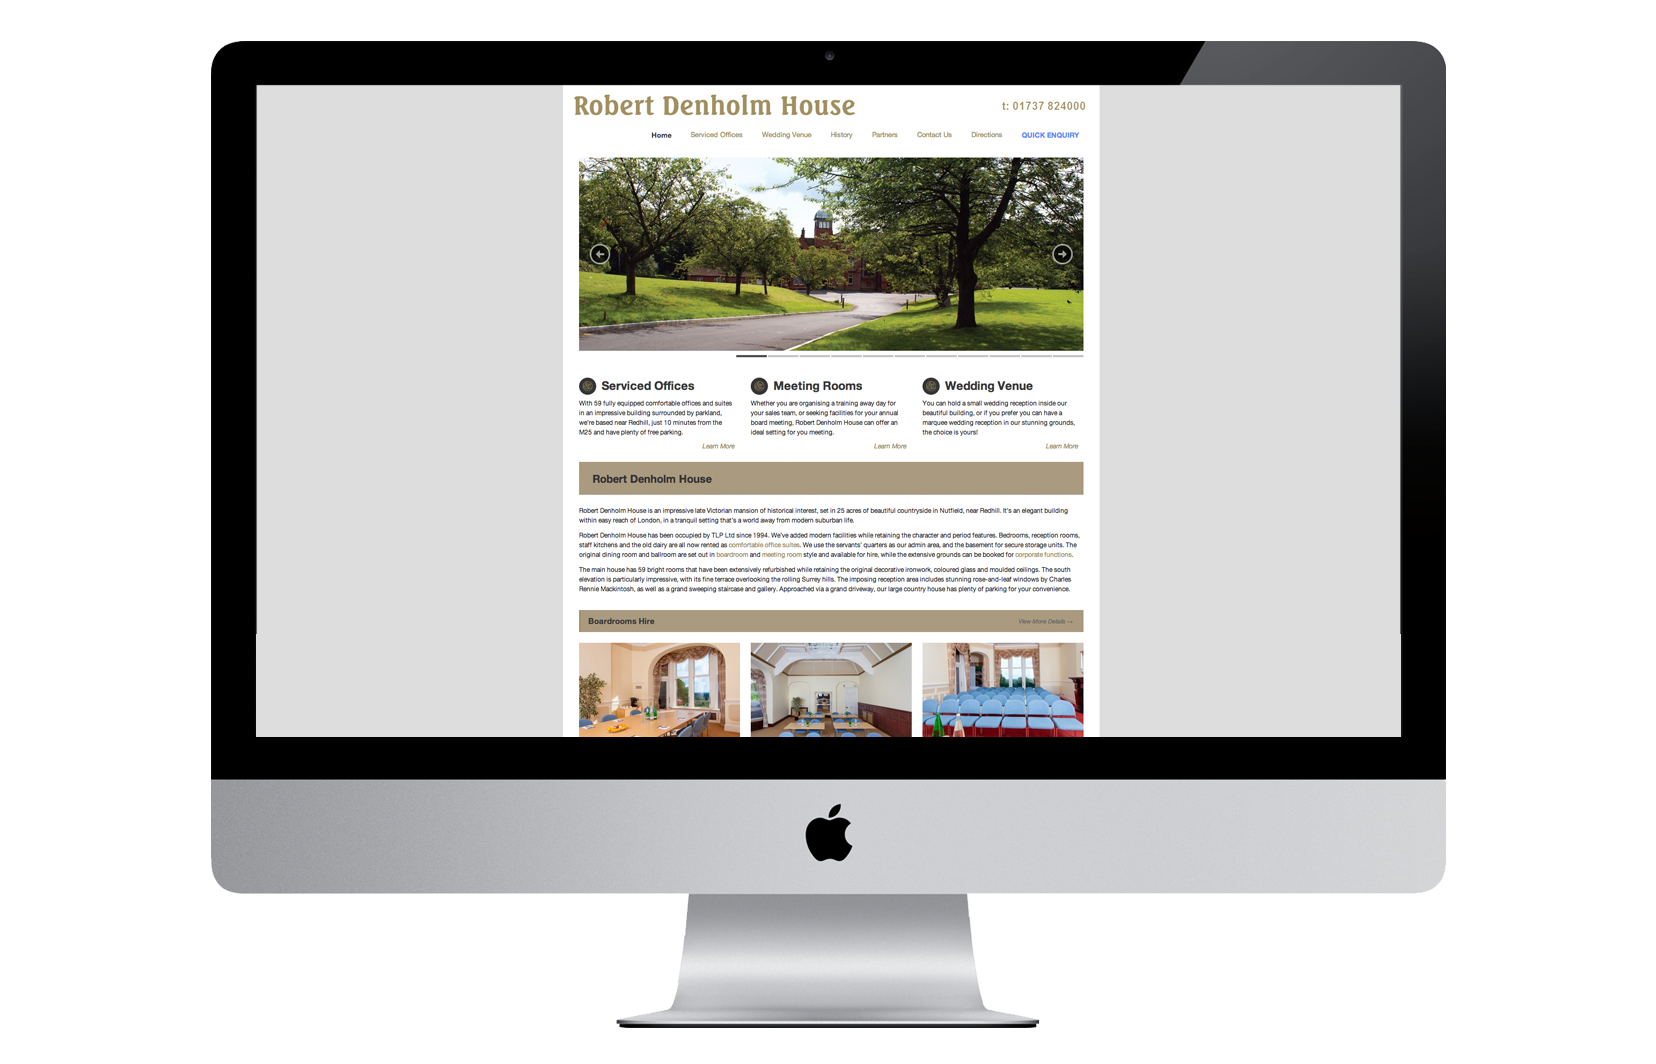 robert-denholm-house-portfolio-website-1